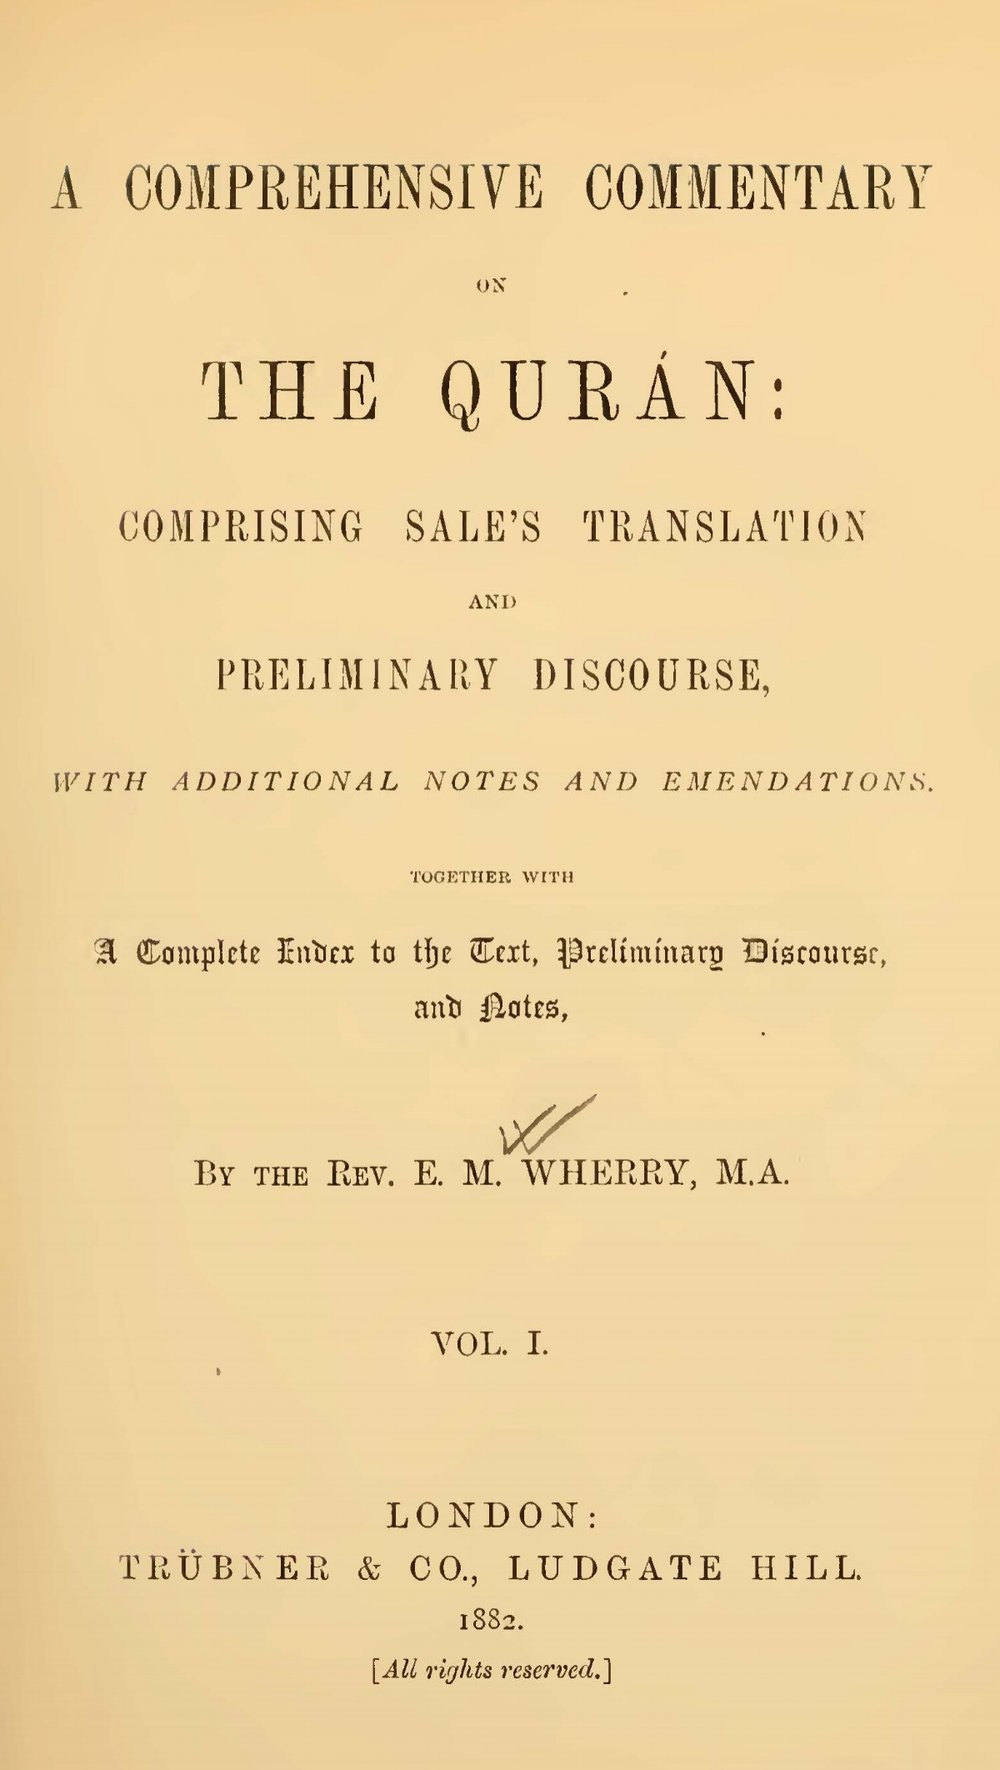 Wherry, Elwood Morris, A Comprehensive Commentary on the Quran, Vol. 1 Title Page.jpg